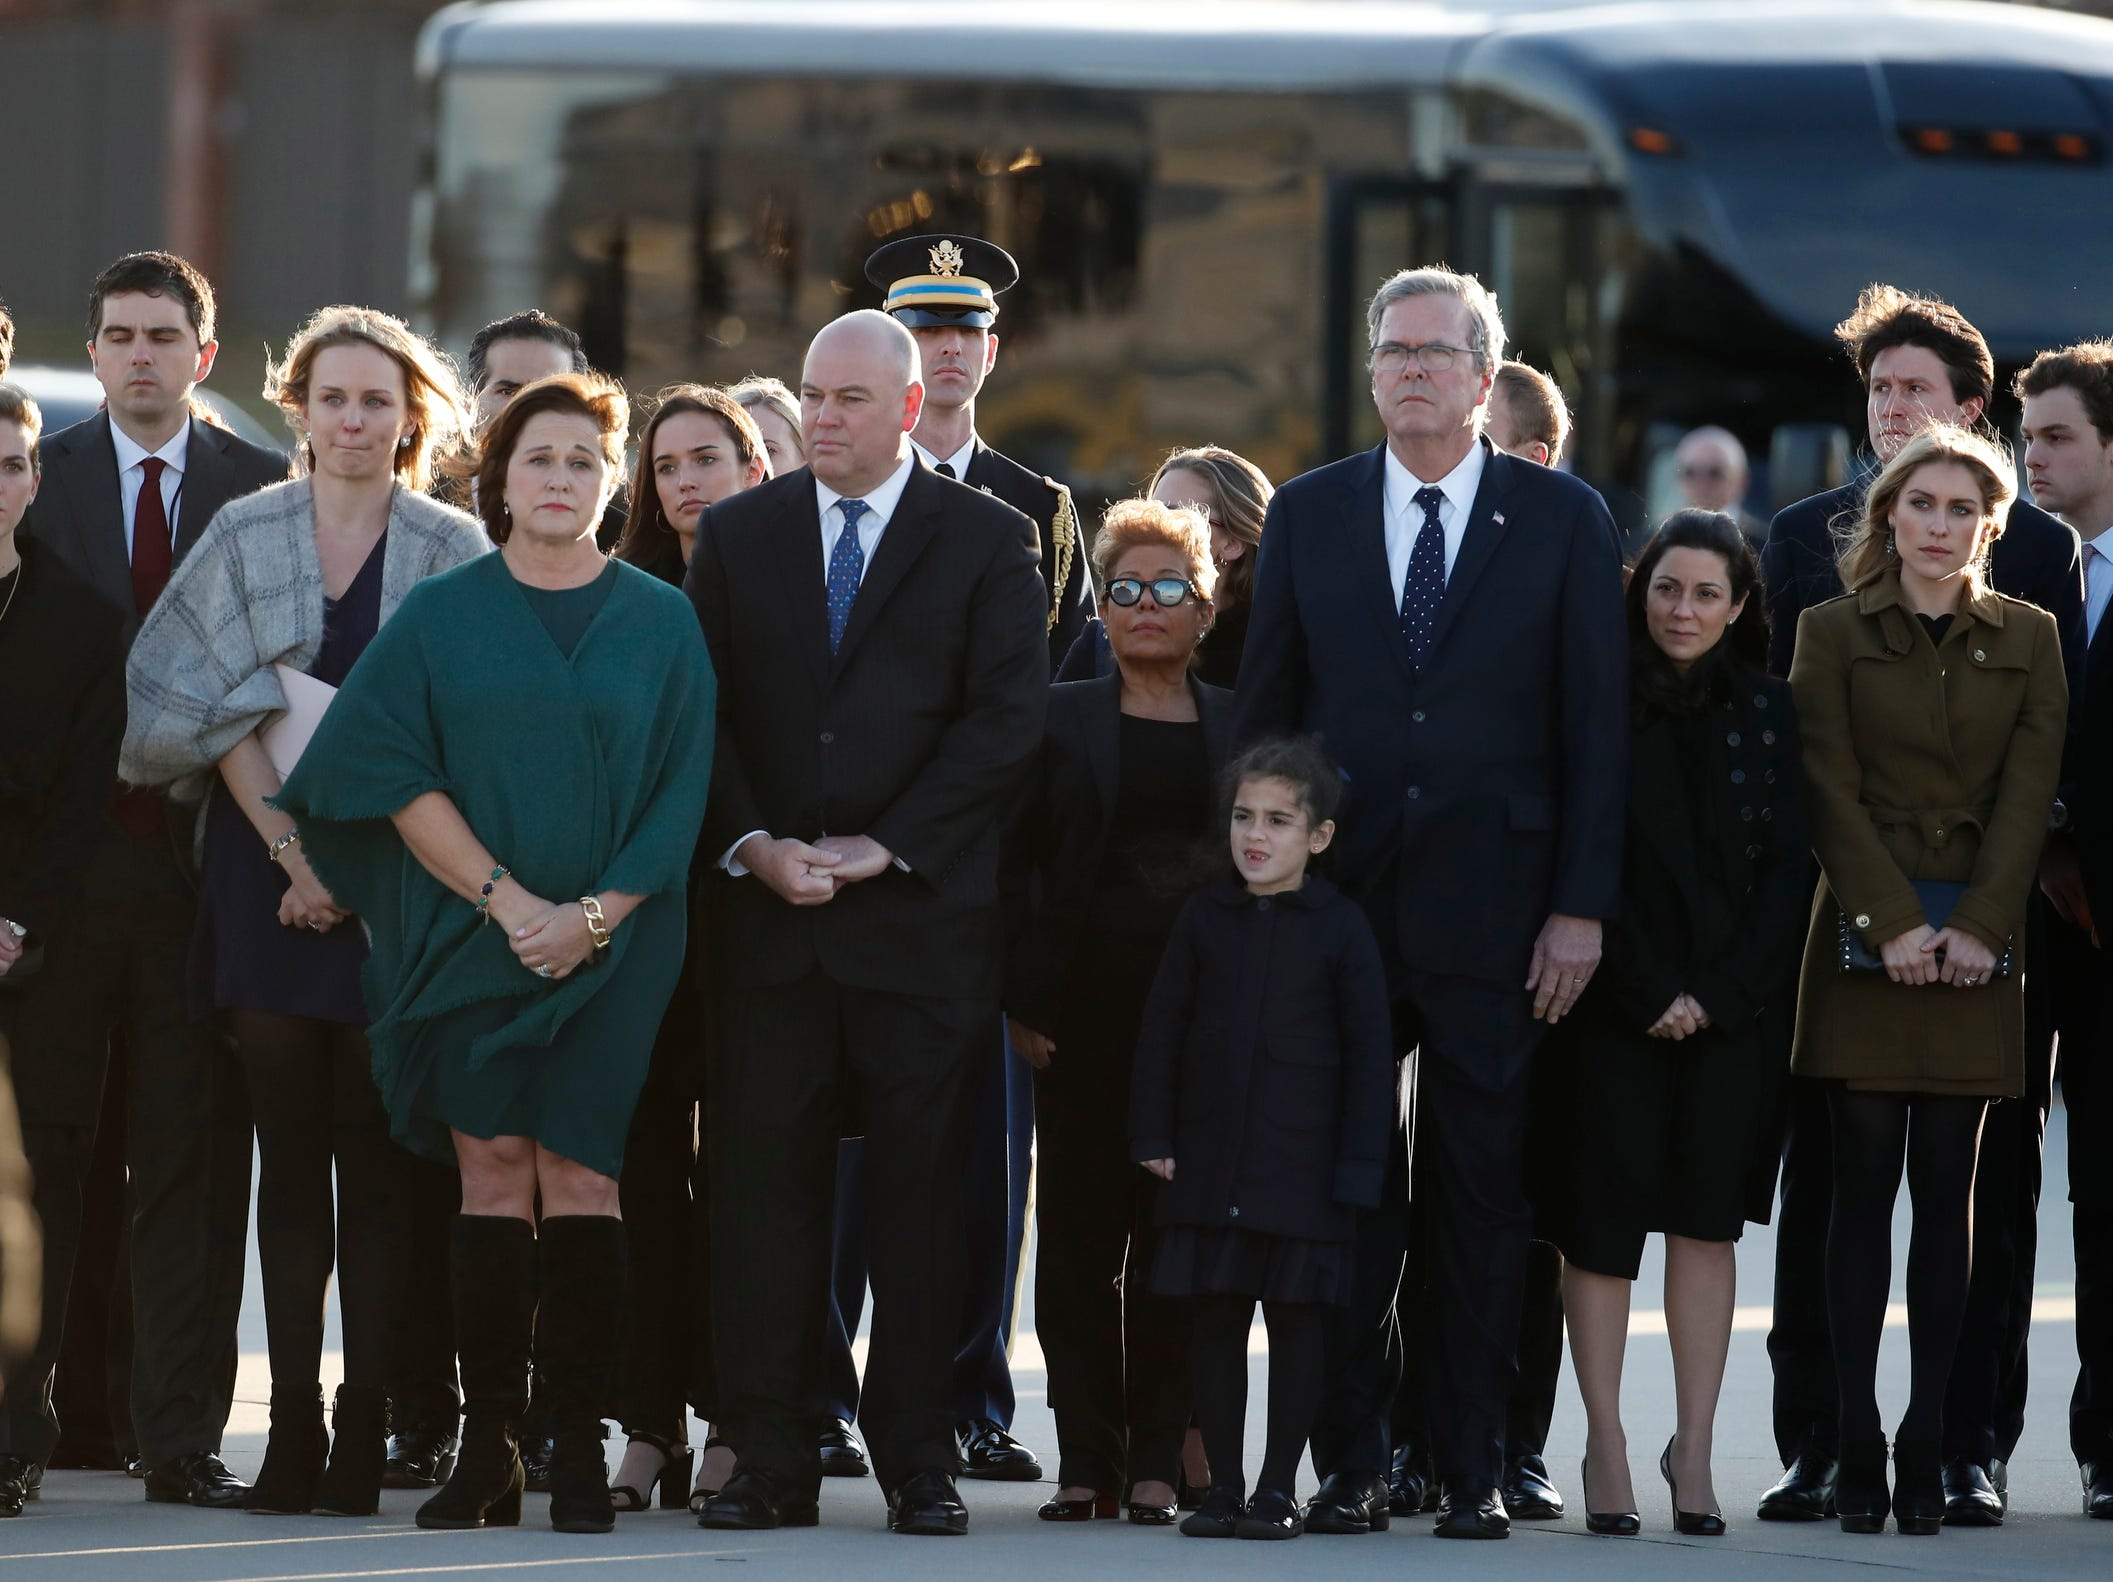 Family members watch as the flag-draped casket of former President George H.W. Bush is carried by a joint services military honor guard at Joint Base Andrews. Bush will lie in state in the Capitol Rotunda before his state funeral at the Washington National Cathedral. George H.W. Bush, the 41st President of the United States (1989-1993), died at the age of 94 on 30 Nov. 2018, at his home in Texas.